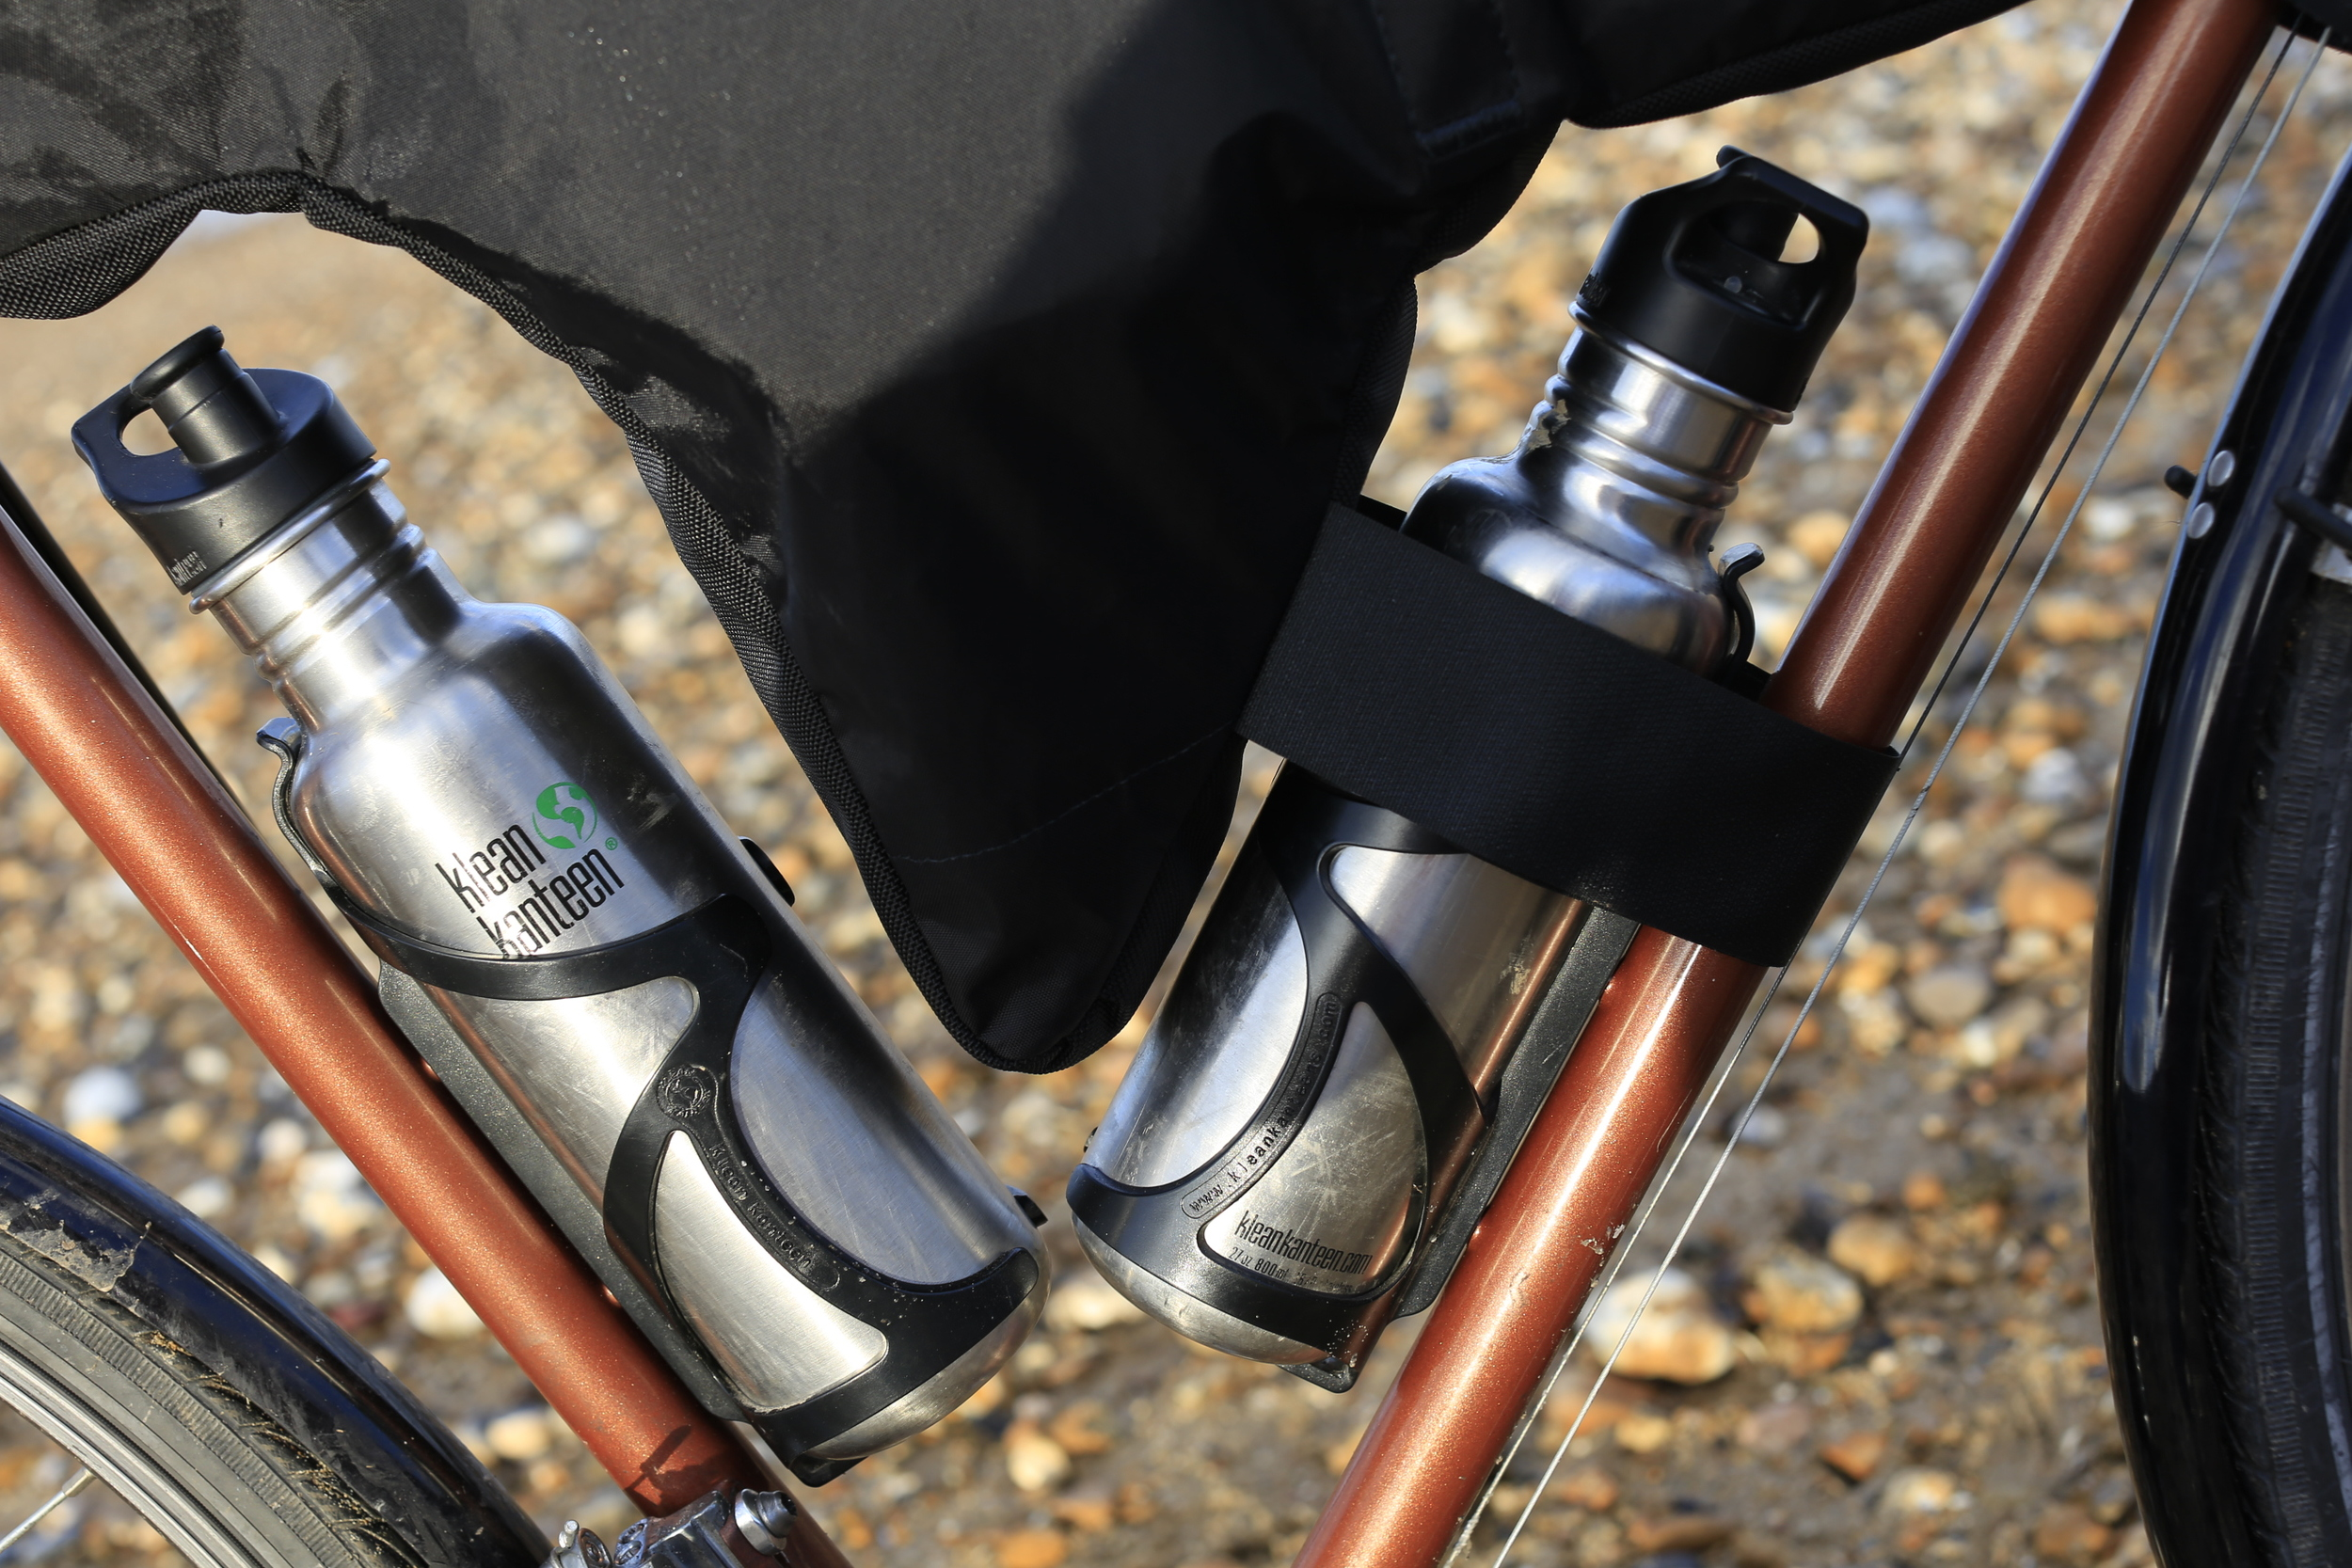 Klean kanteen, raleigh, bicycle, beach, touring bicycle, canon, canon 6d